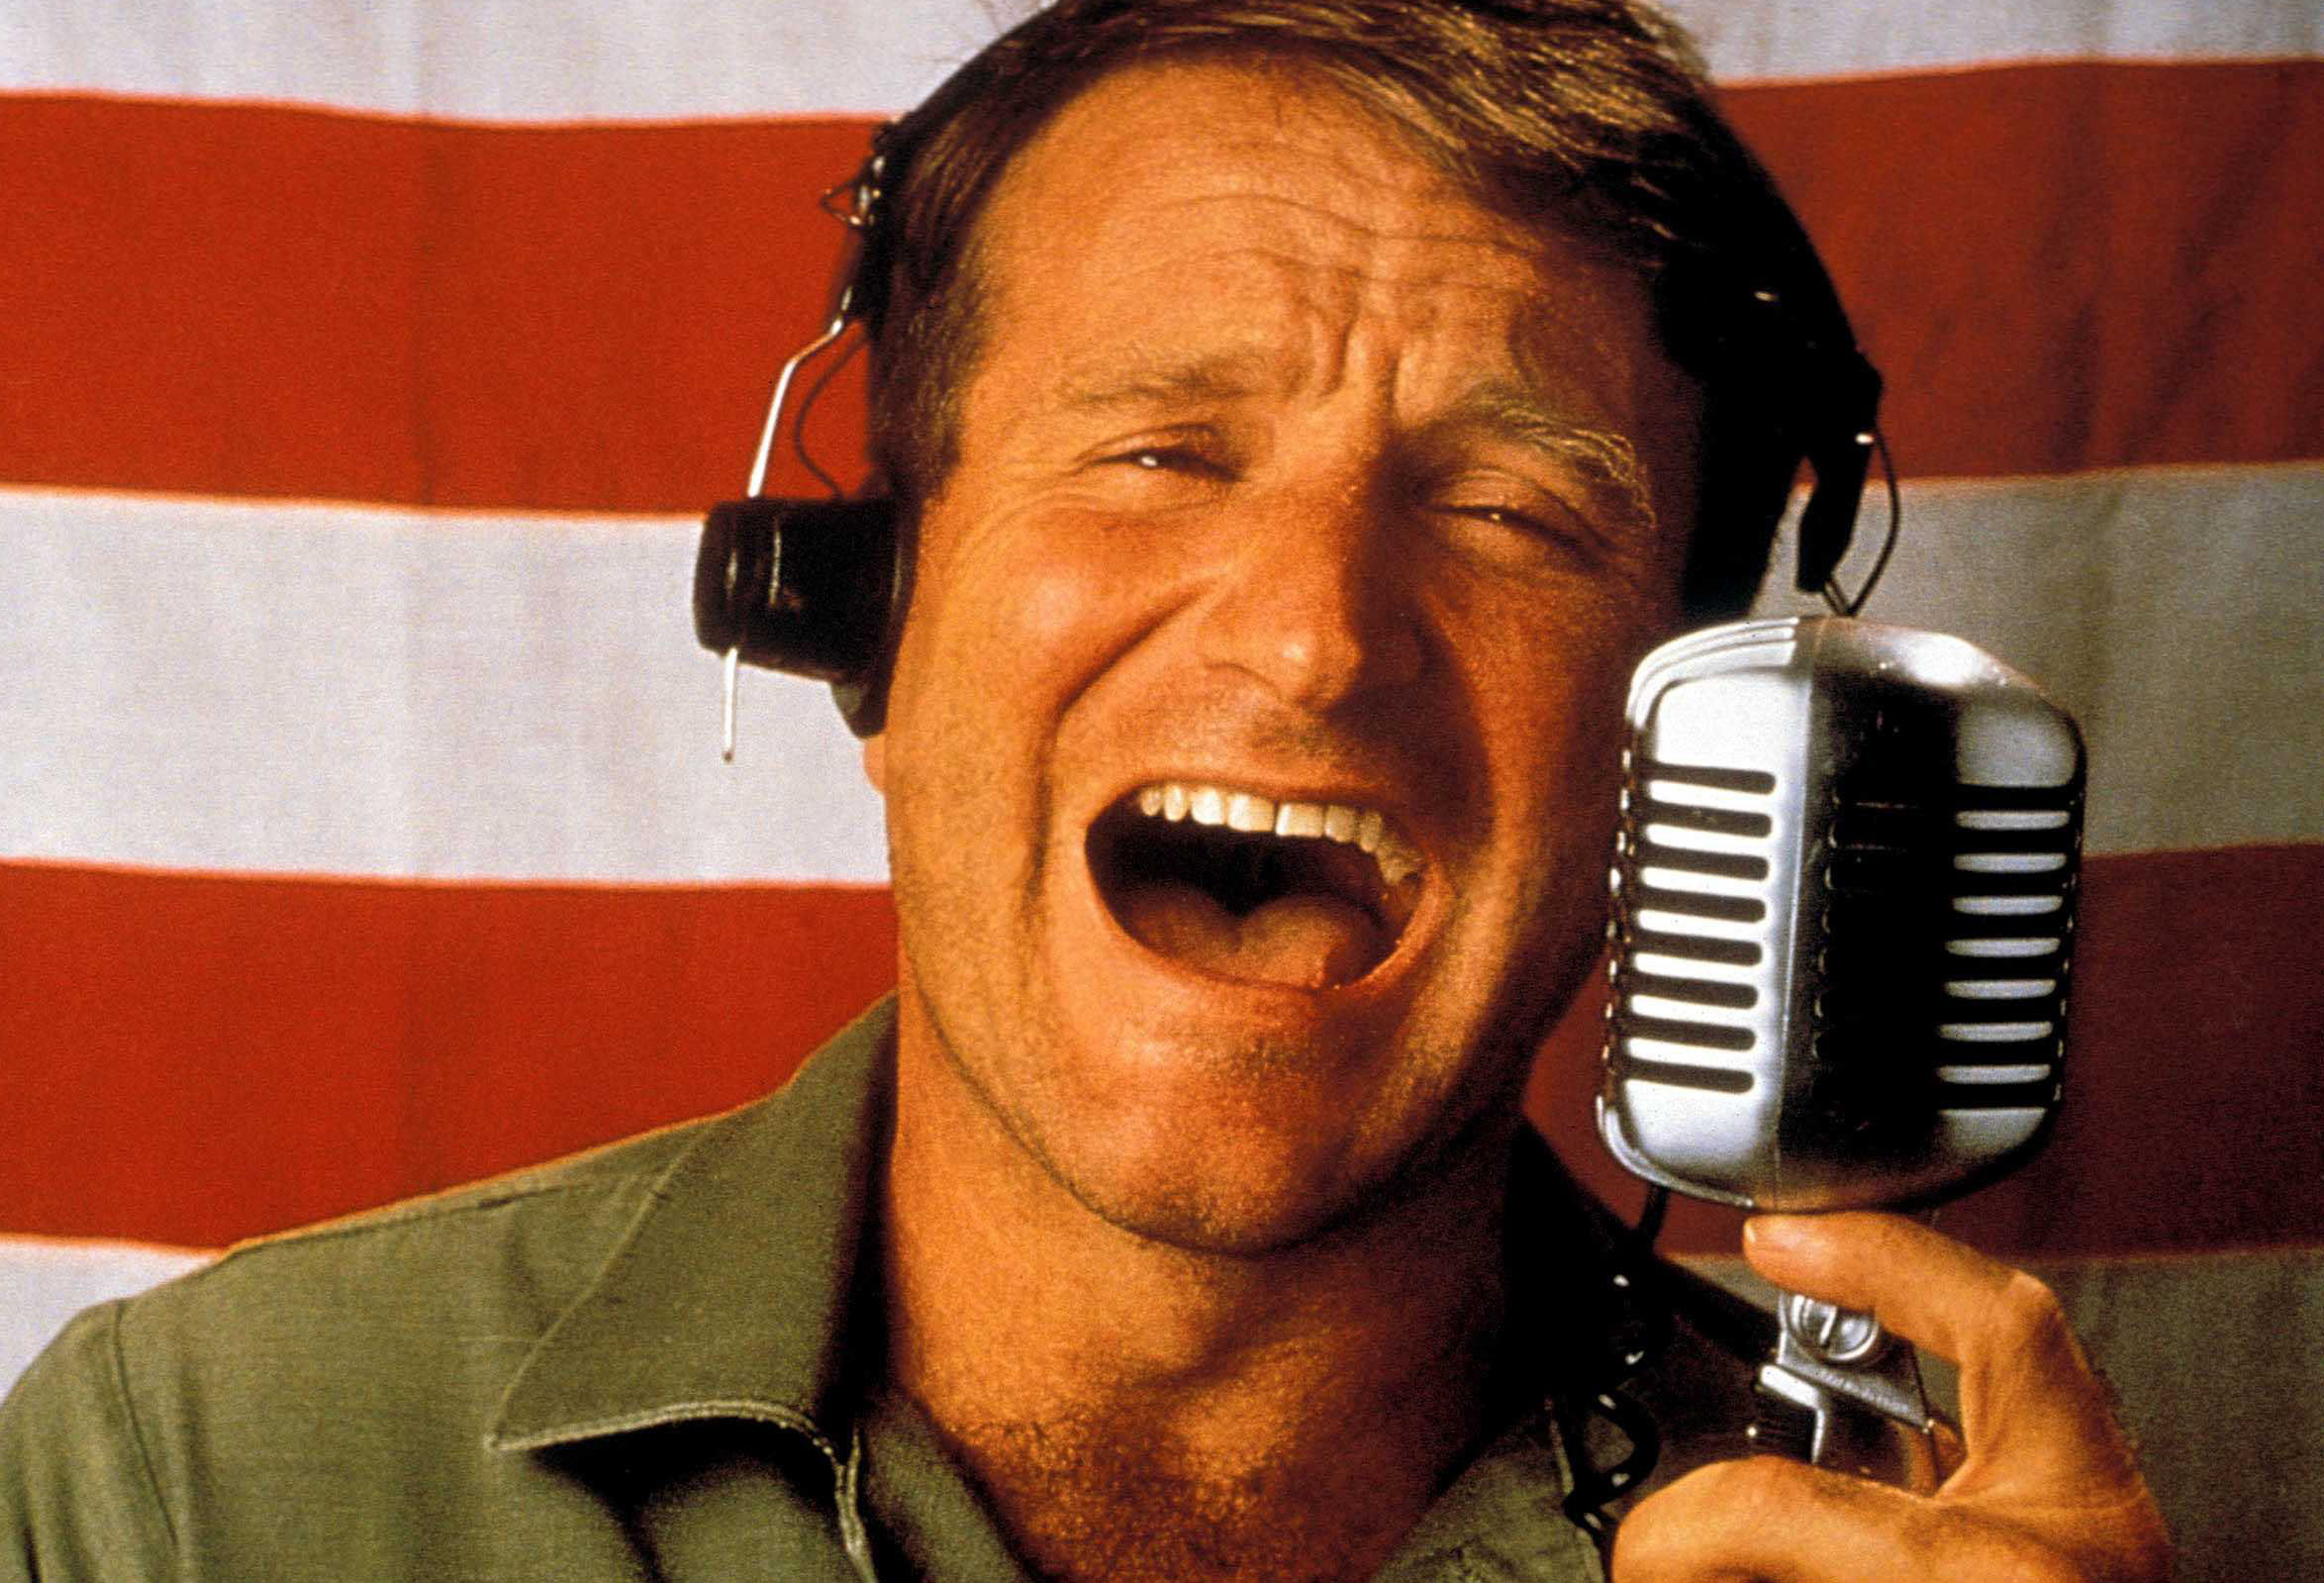 https://i0.wp.com/images5.fanpop.com/image/photos/25300000/Good-Morning-Vietnam-robin-williams-25340599-2348-1599.jpg